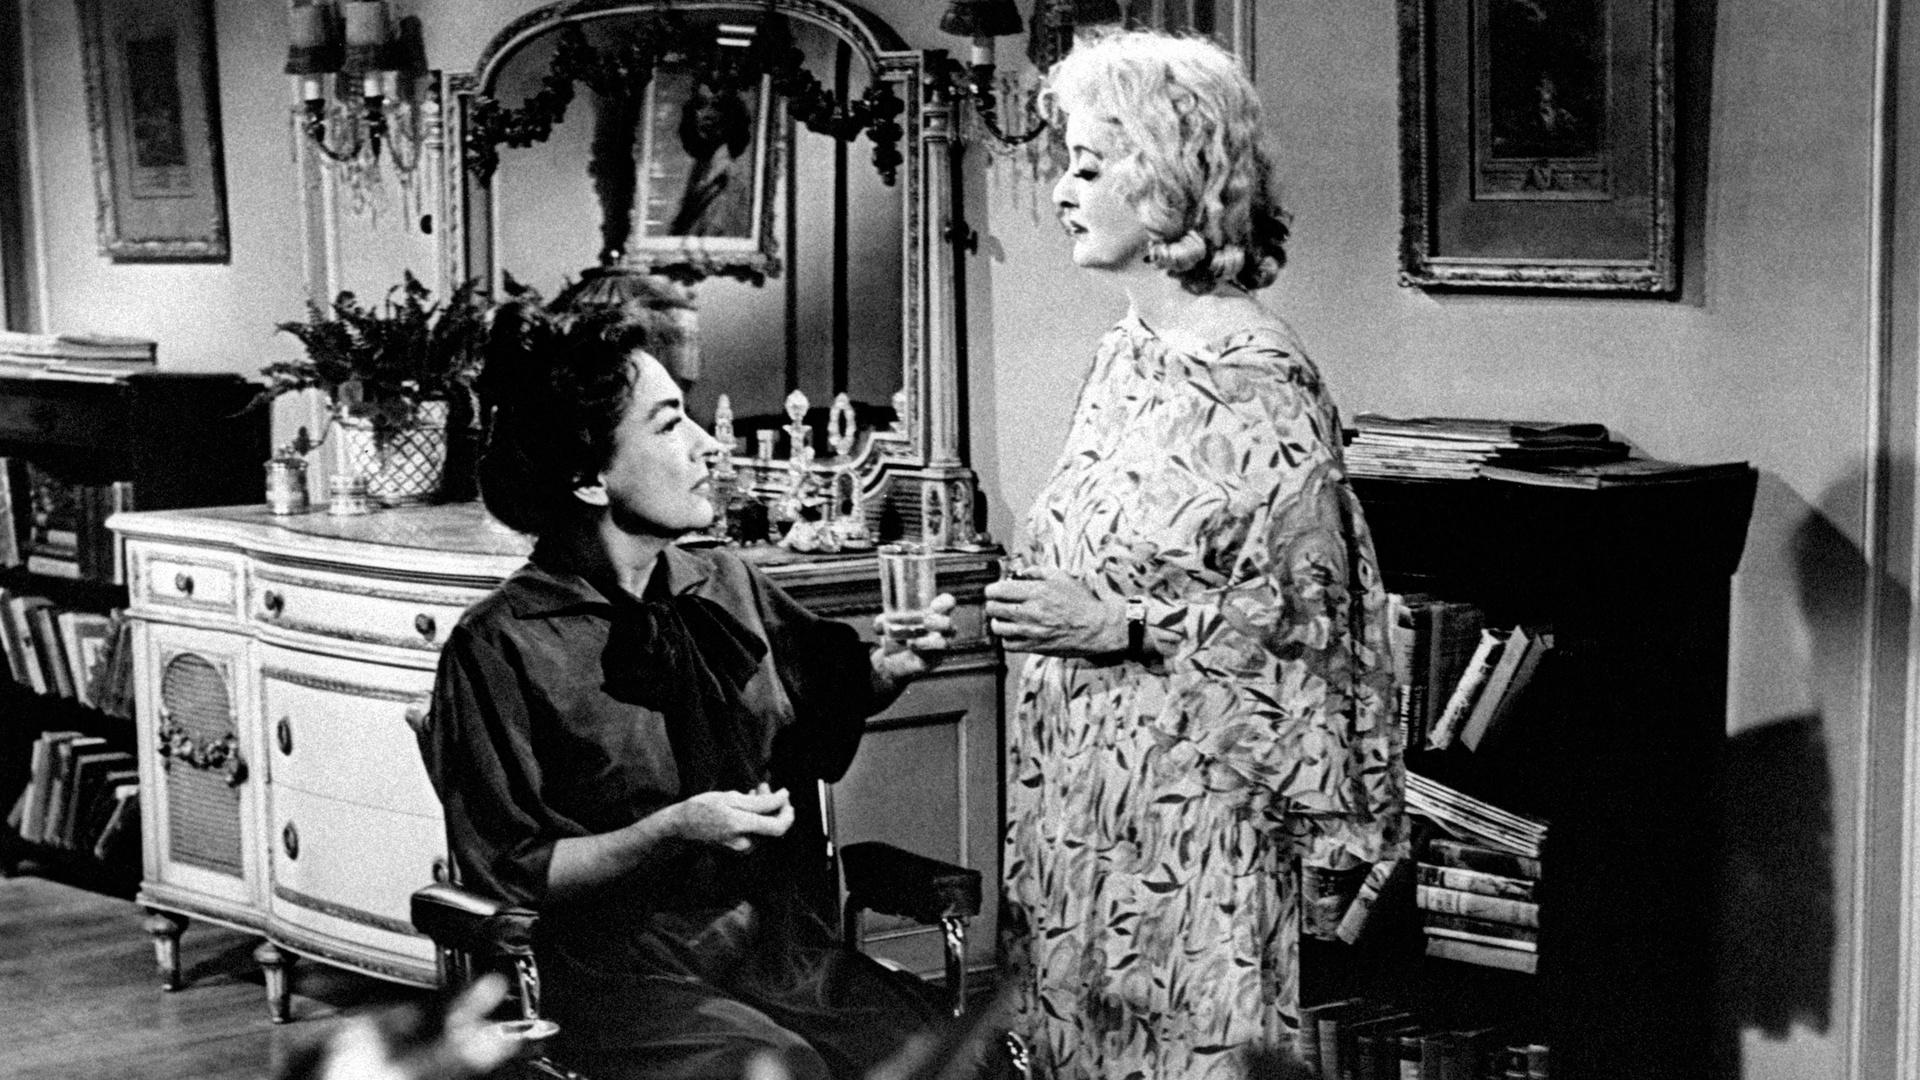 A Timeline of the Feud Between Bette Davis and Joan Crawford